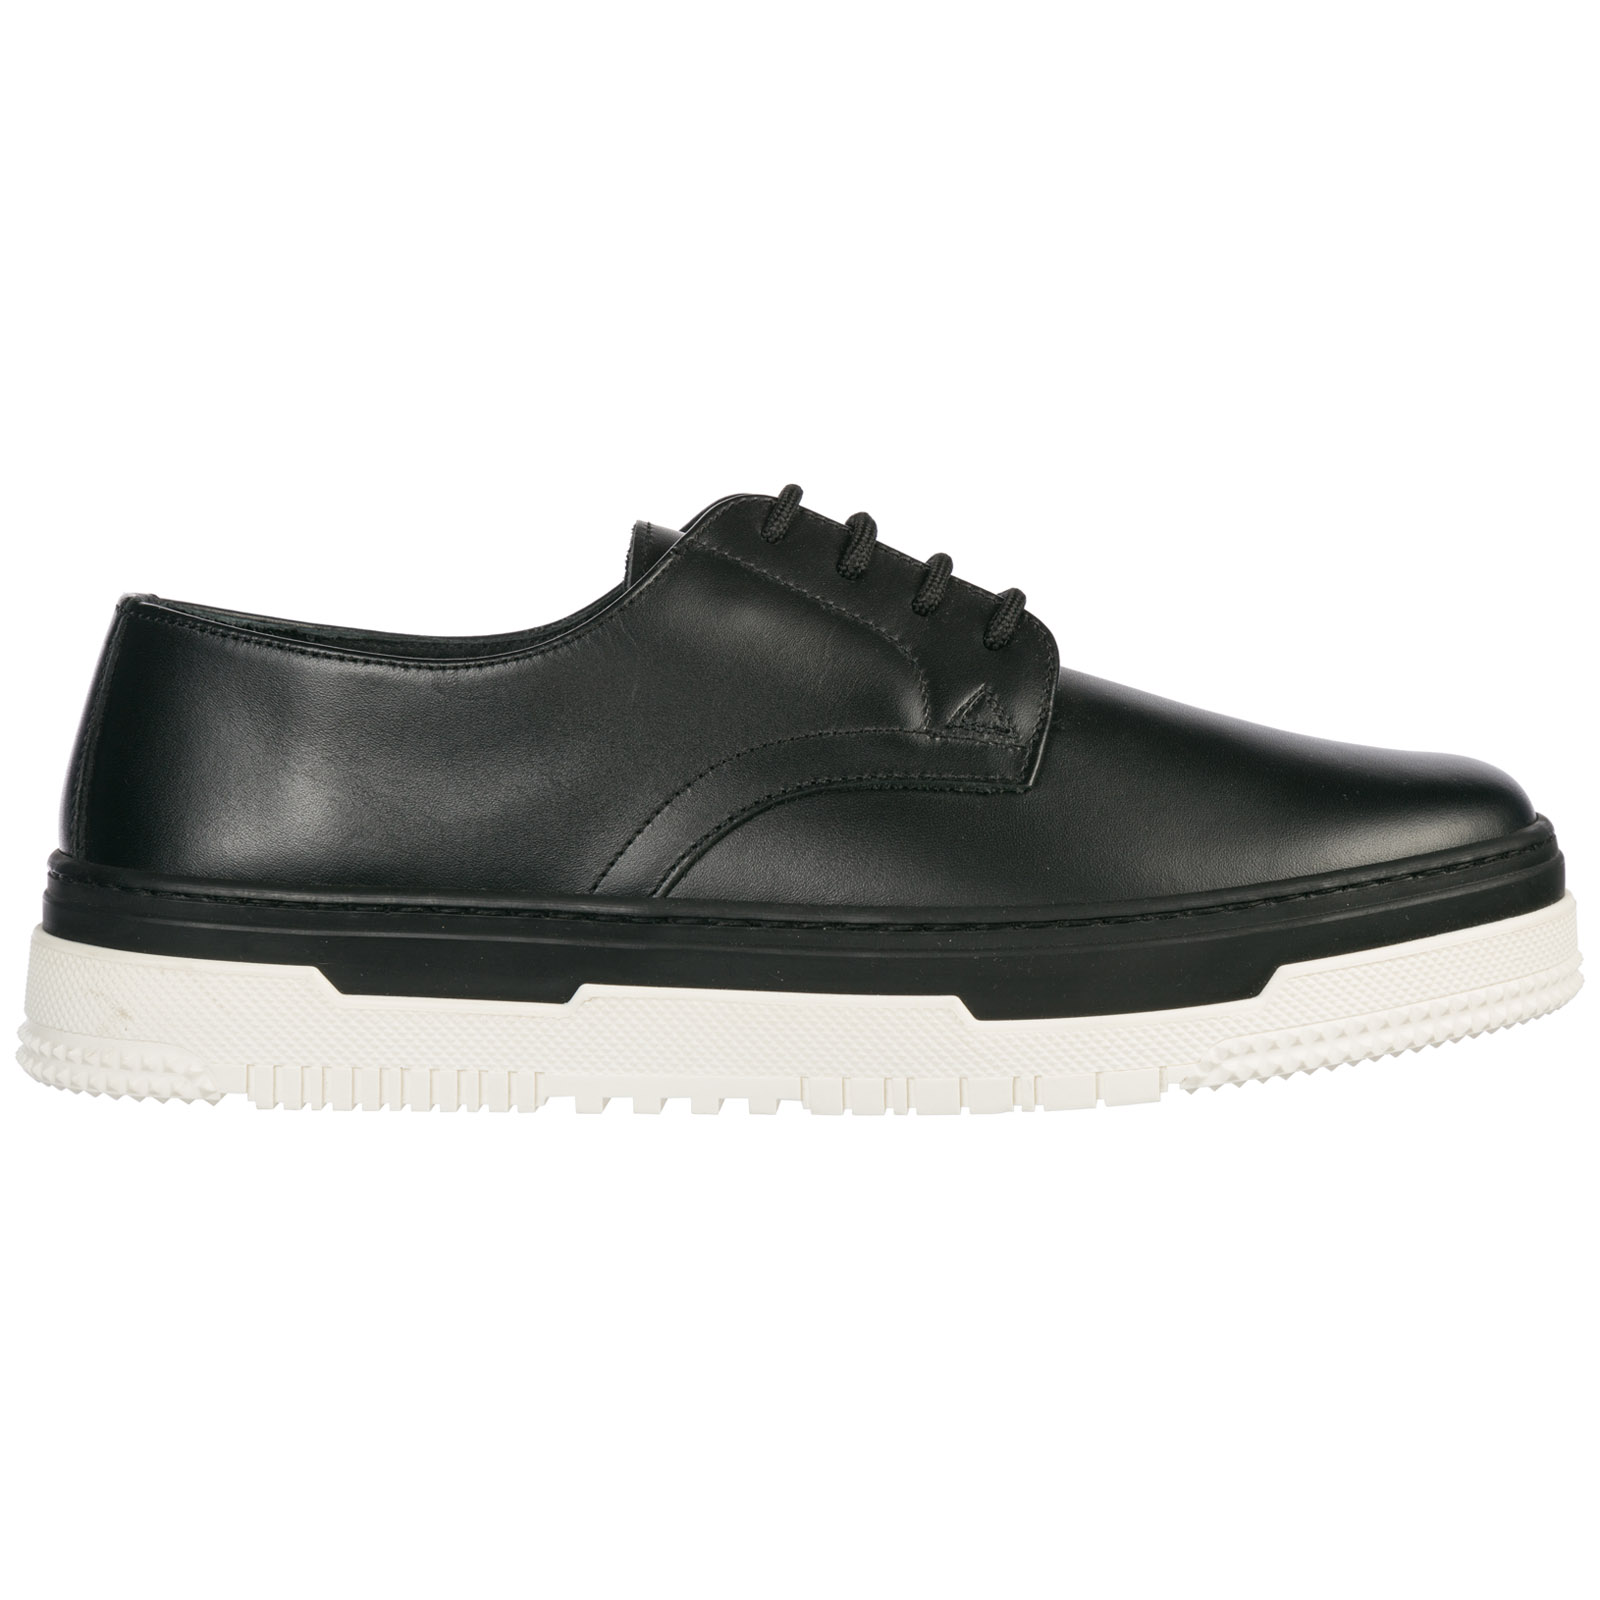 Valentino Men's Classic Leather Lace Up Laced Formal Shoes Derby In Black